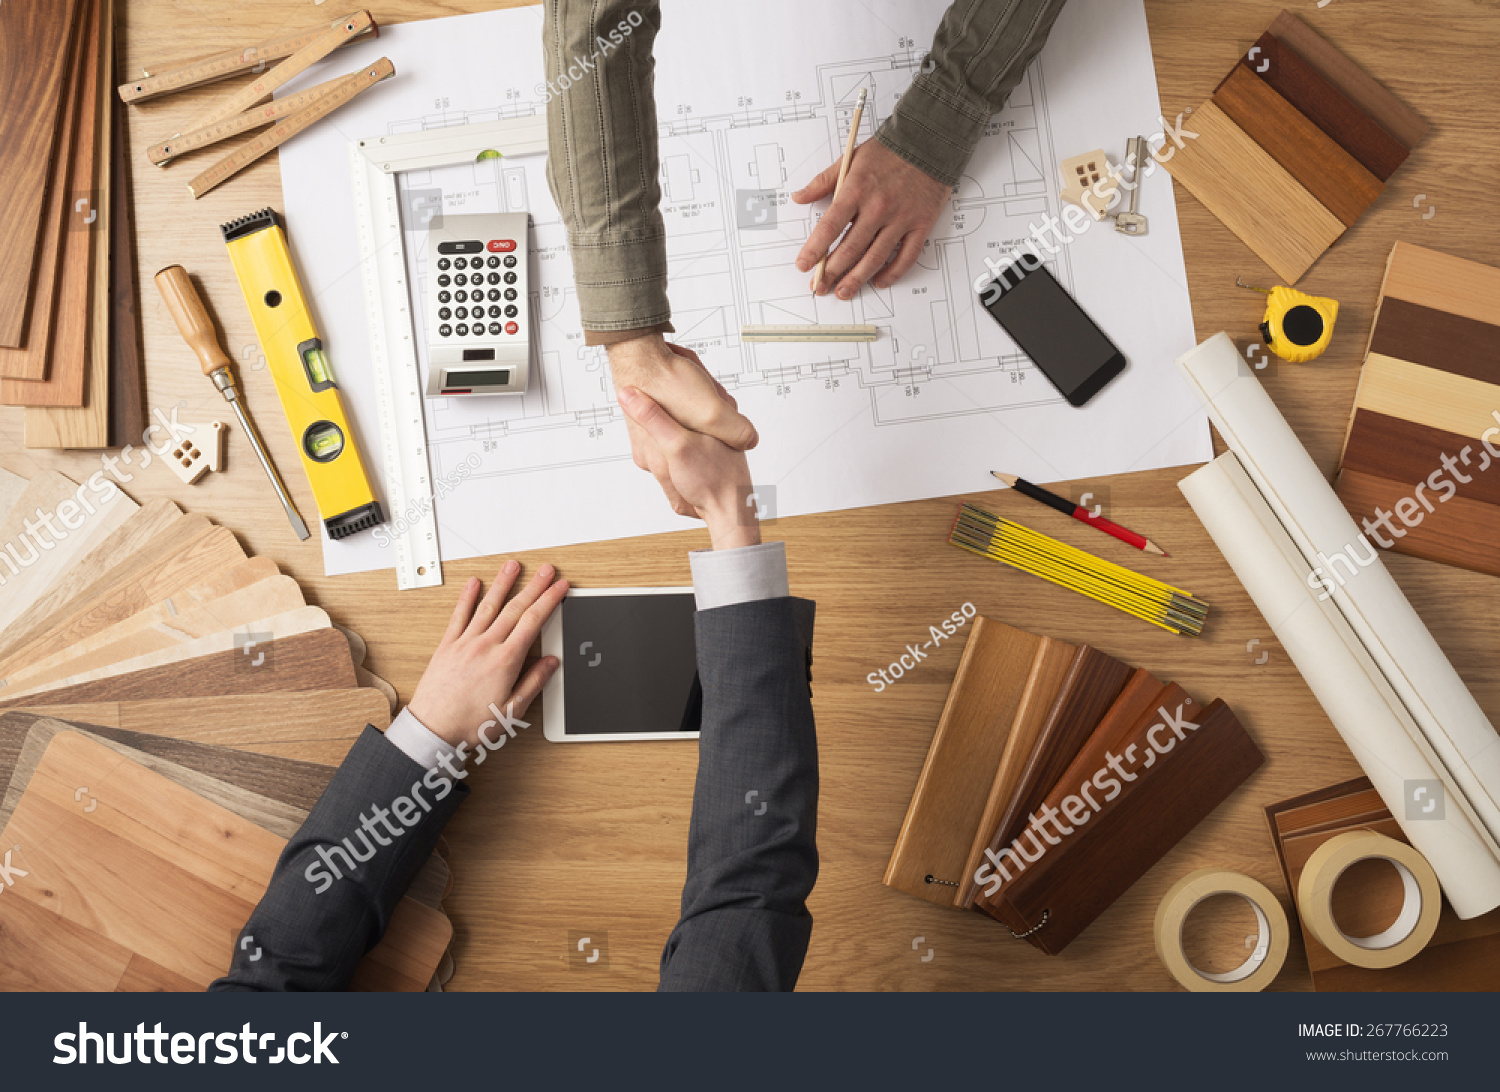 Architect and customer businessman shaking hands top view, desktop with building project, tools and wood swatches on background #267766223